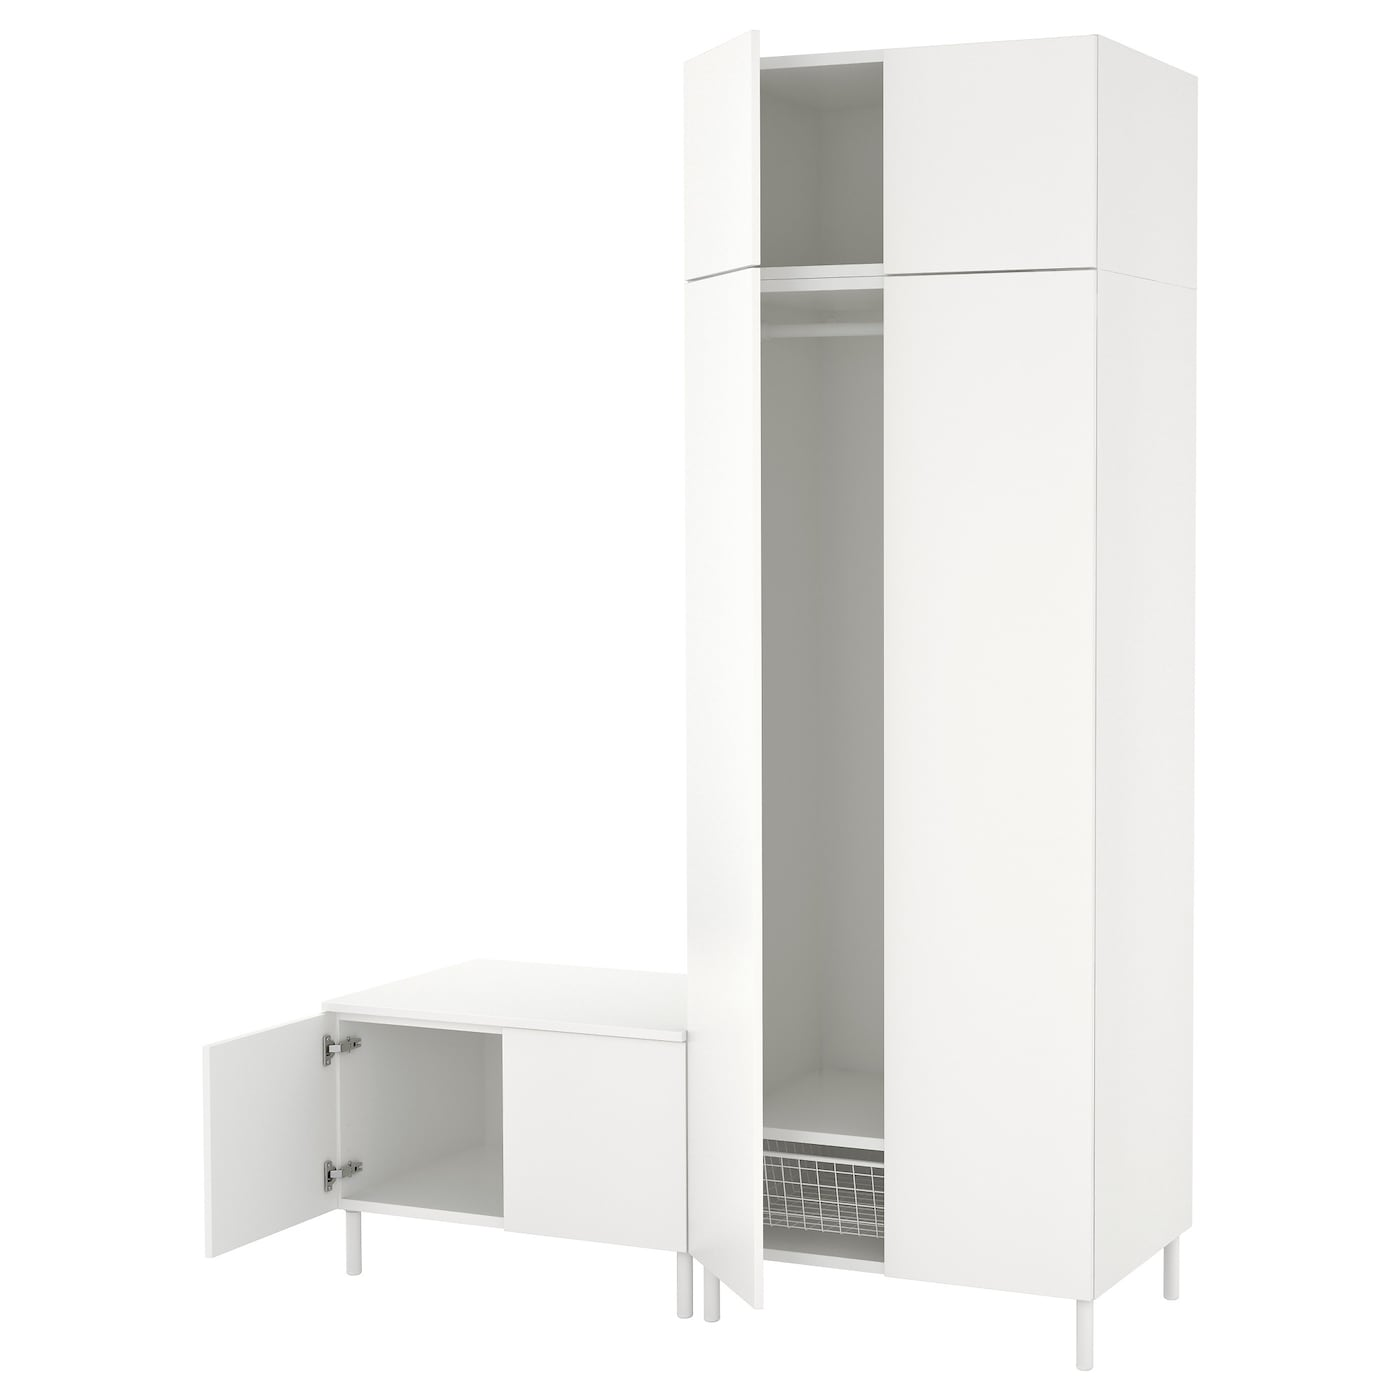 platsa armoire penderie blanc fonnes blanc 160 x 57 x 231 cm ikea. Black Bedroom Furniture Sets. Home Design Ideas